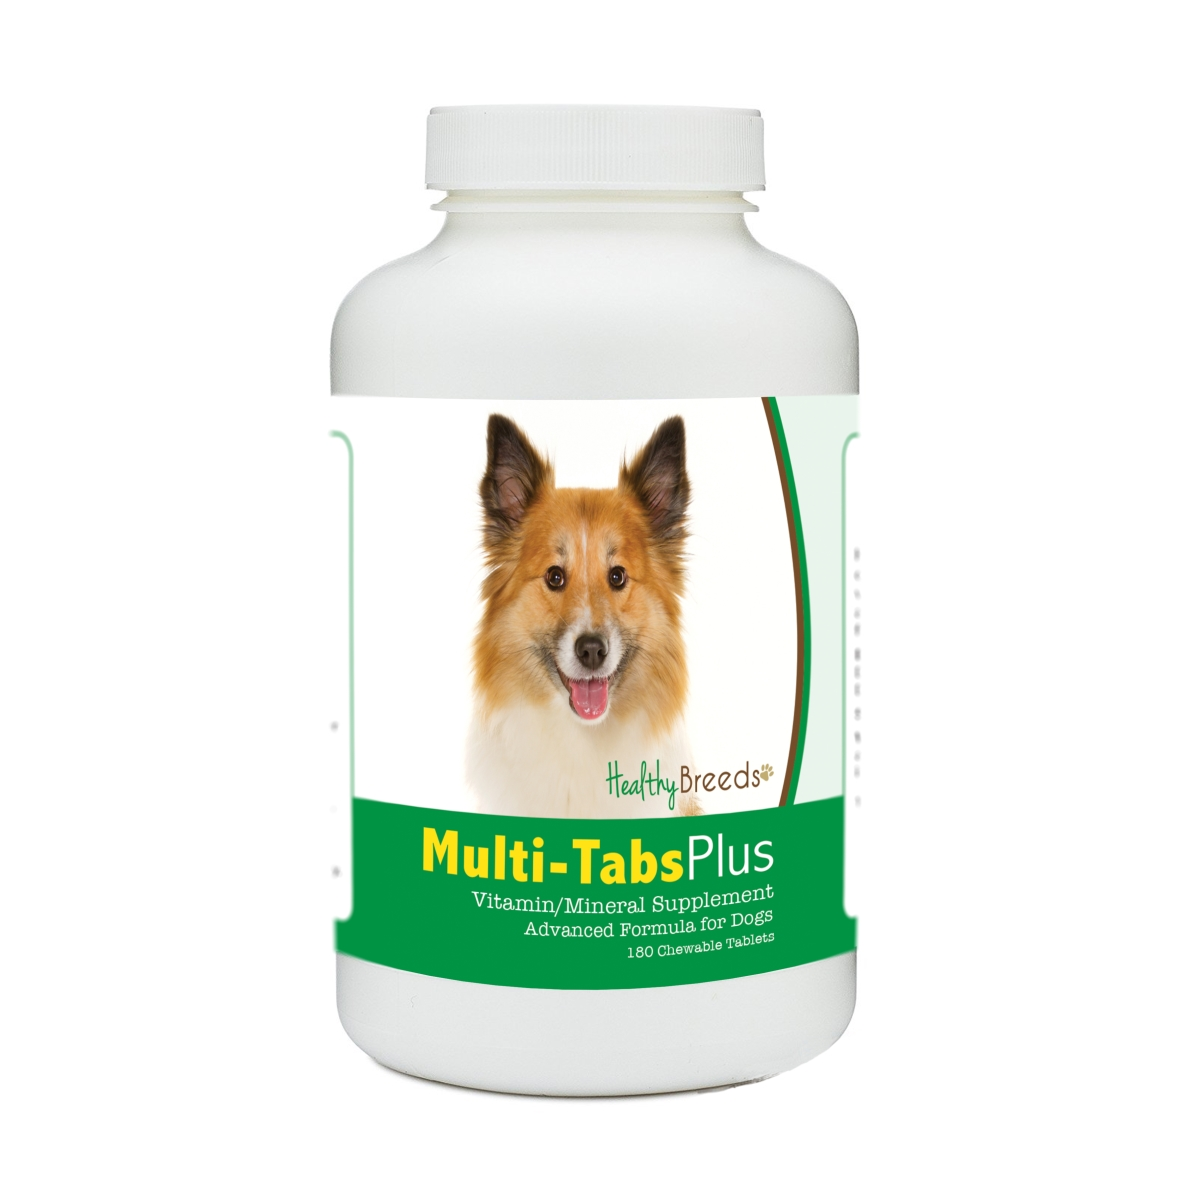 Healthy Breeds 840235172222 Icelandic Sheepdog Multi-Tabs Plus Chewable Tablets - 180 Count